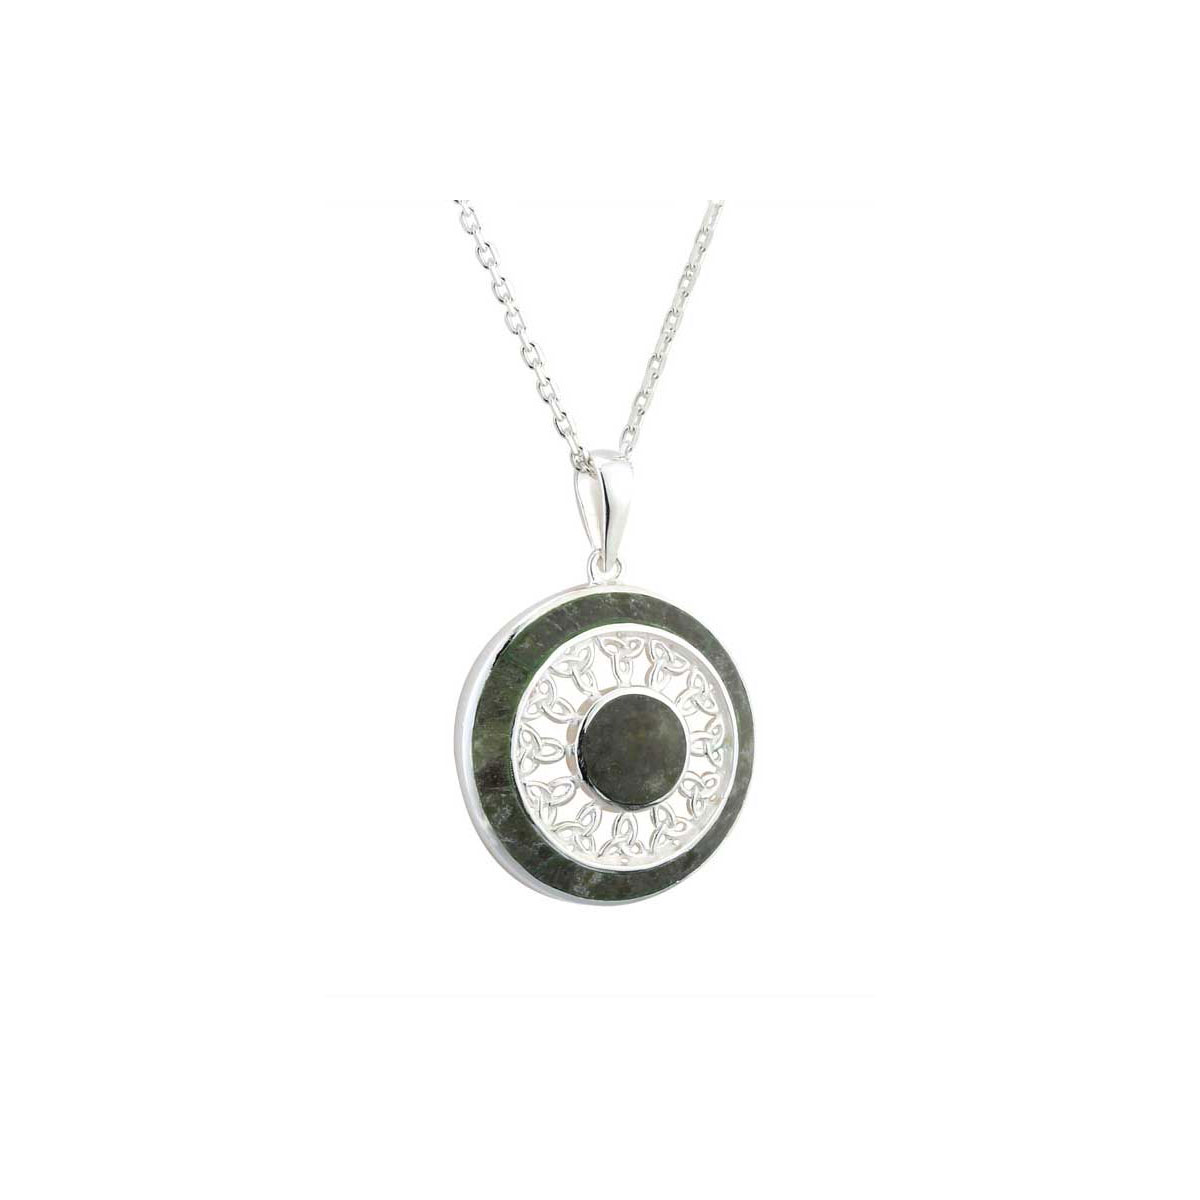 Cashs Ireland, Sterling Silver and Connemara Marble Round Trinity Pendant